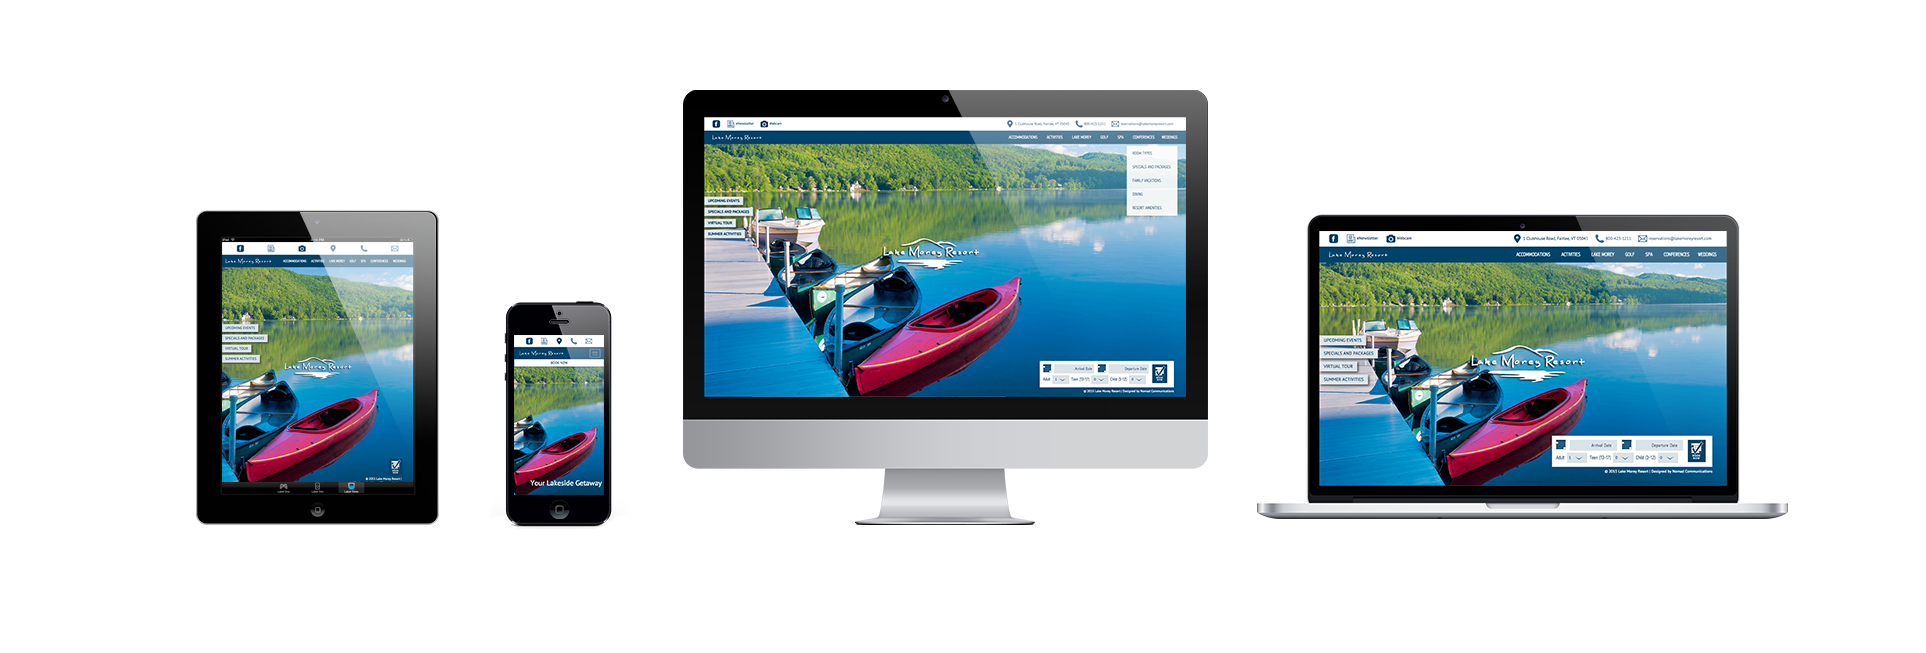 iPad, iPhone, iMac, and Macbook showing the Lake Morey Resort homepage